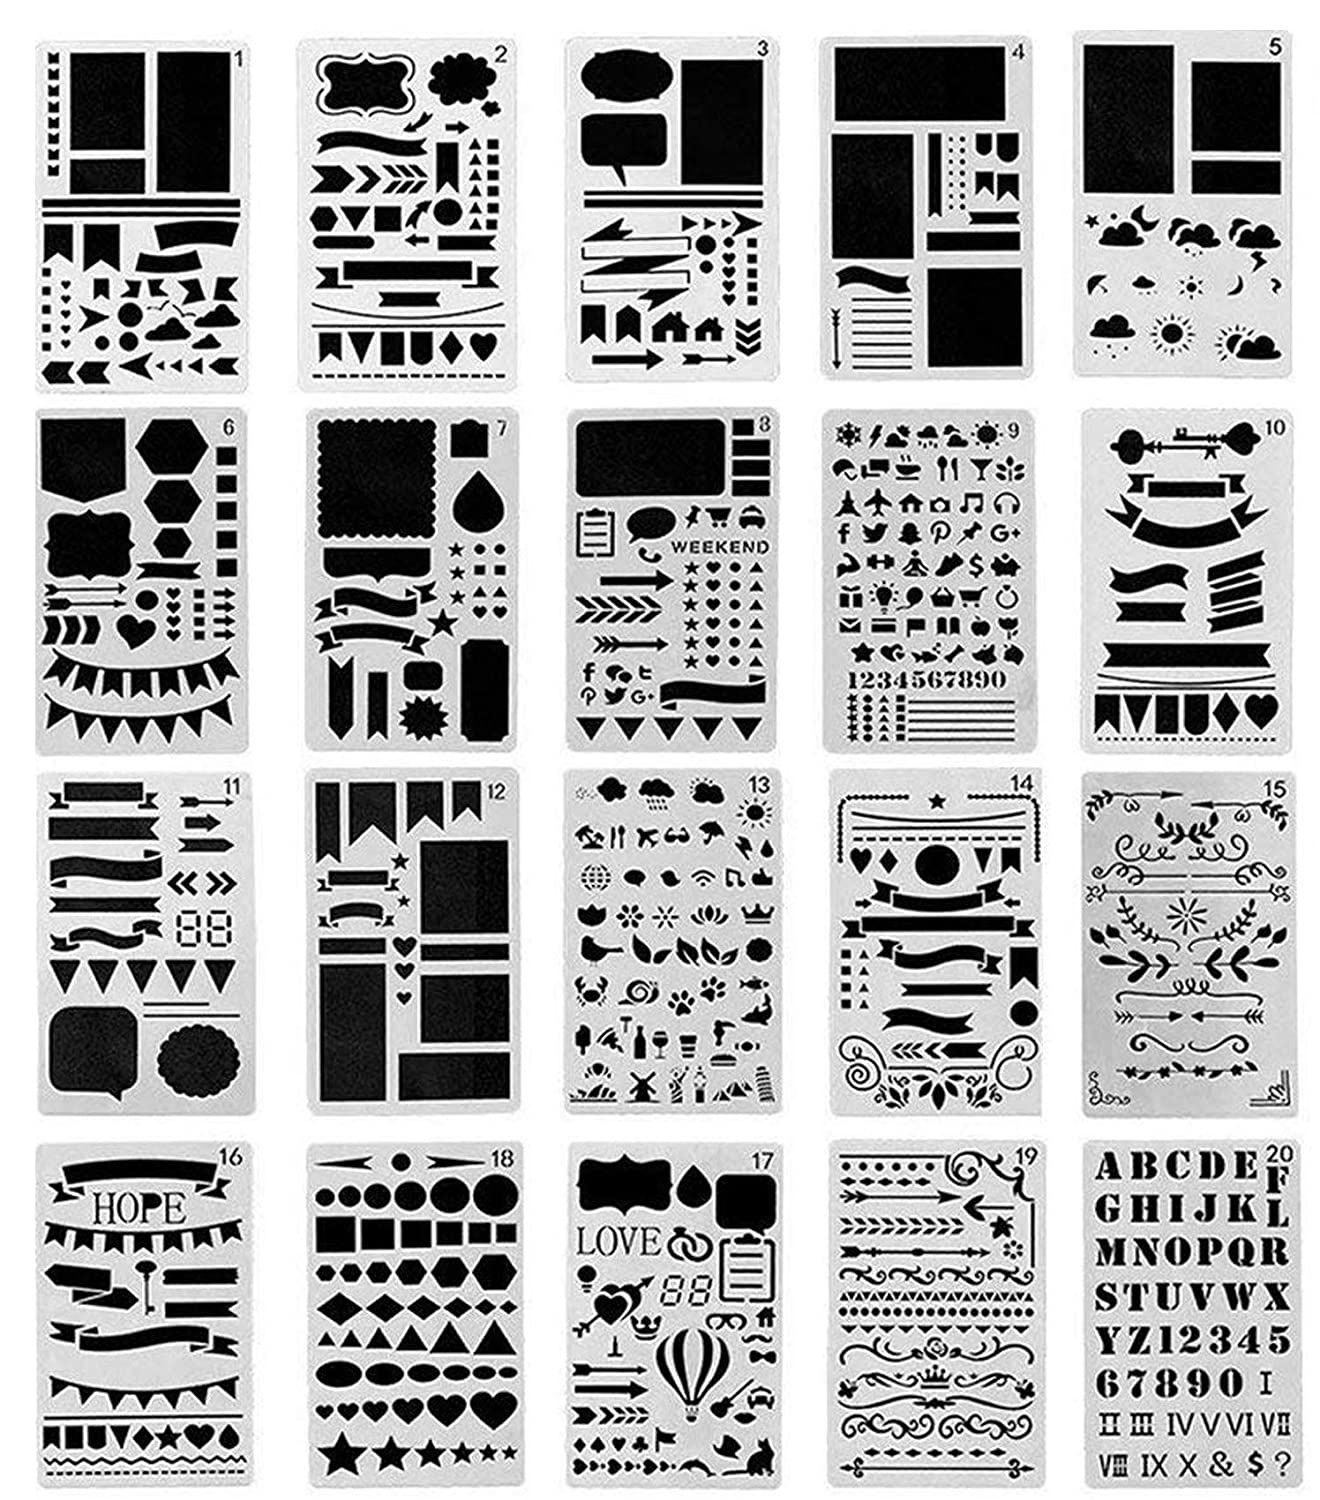 Cymax 20 pz Plastica Disegno di righello Stencil scala Template set Grafica Stencil Template numero Stencil righello